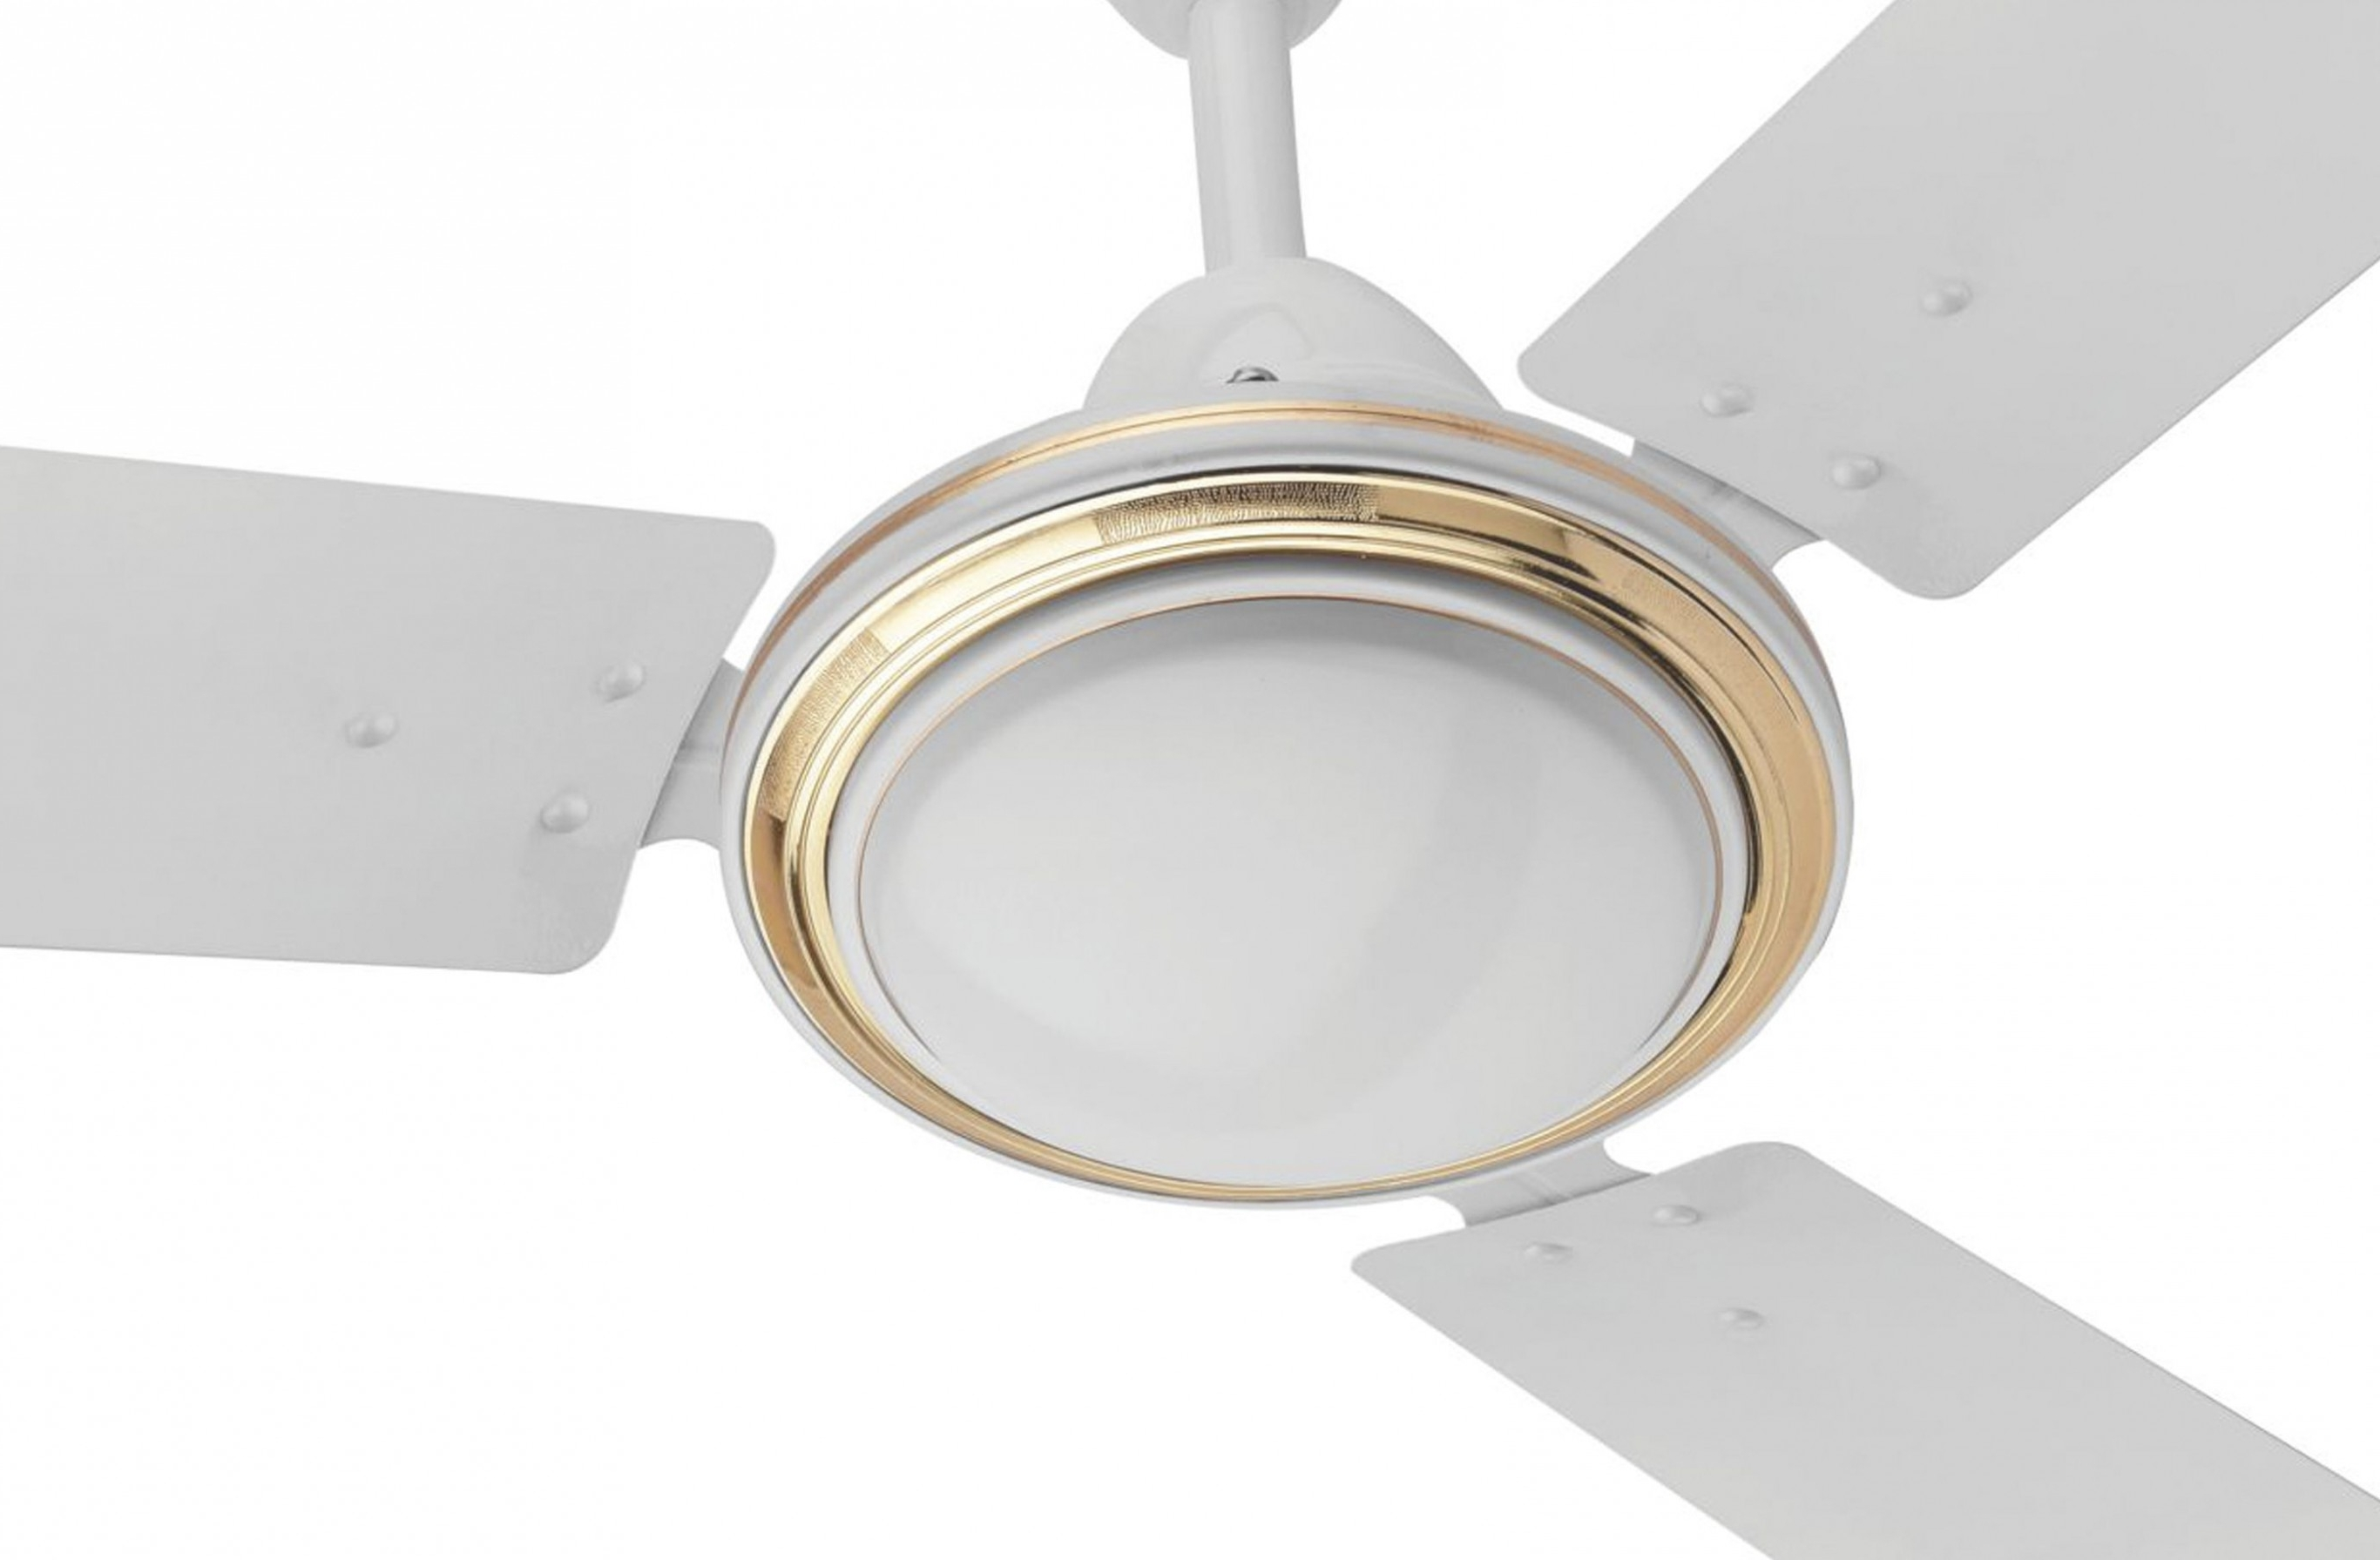 Most Popular Best Outdoor Ceiling Fans — Foothillfolk Designs For Outdoor Ceiling Fans Under $75 (Gallery 18 of 20)